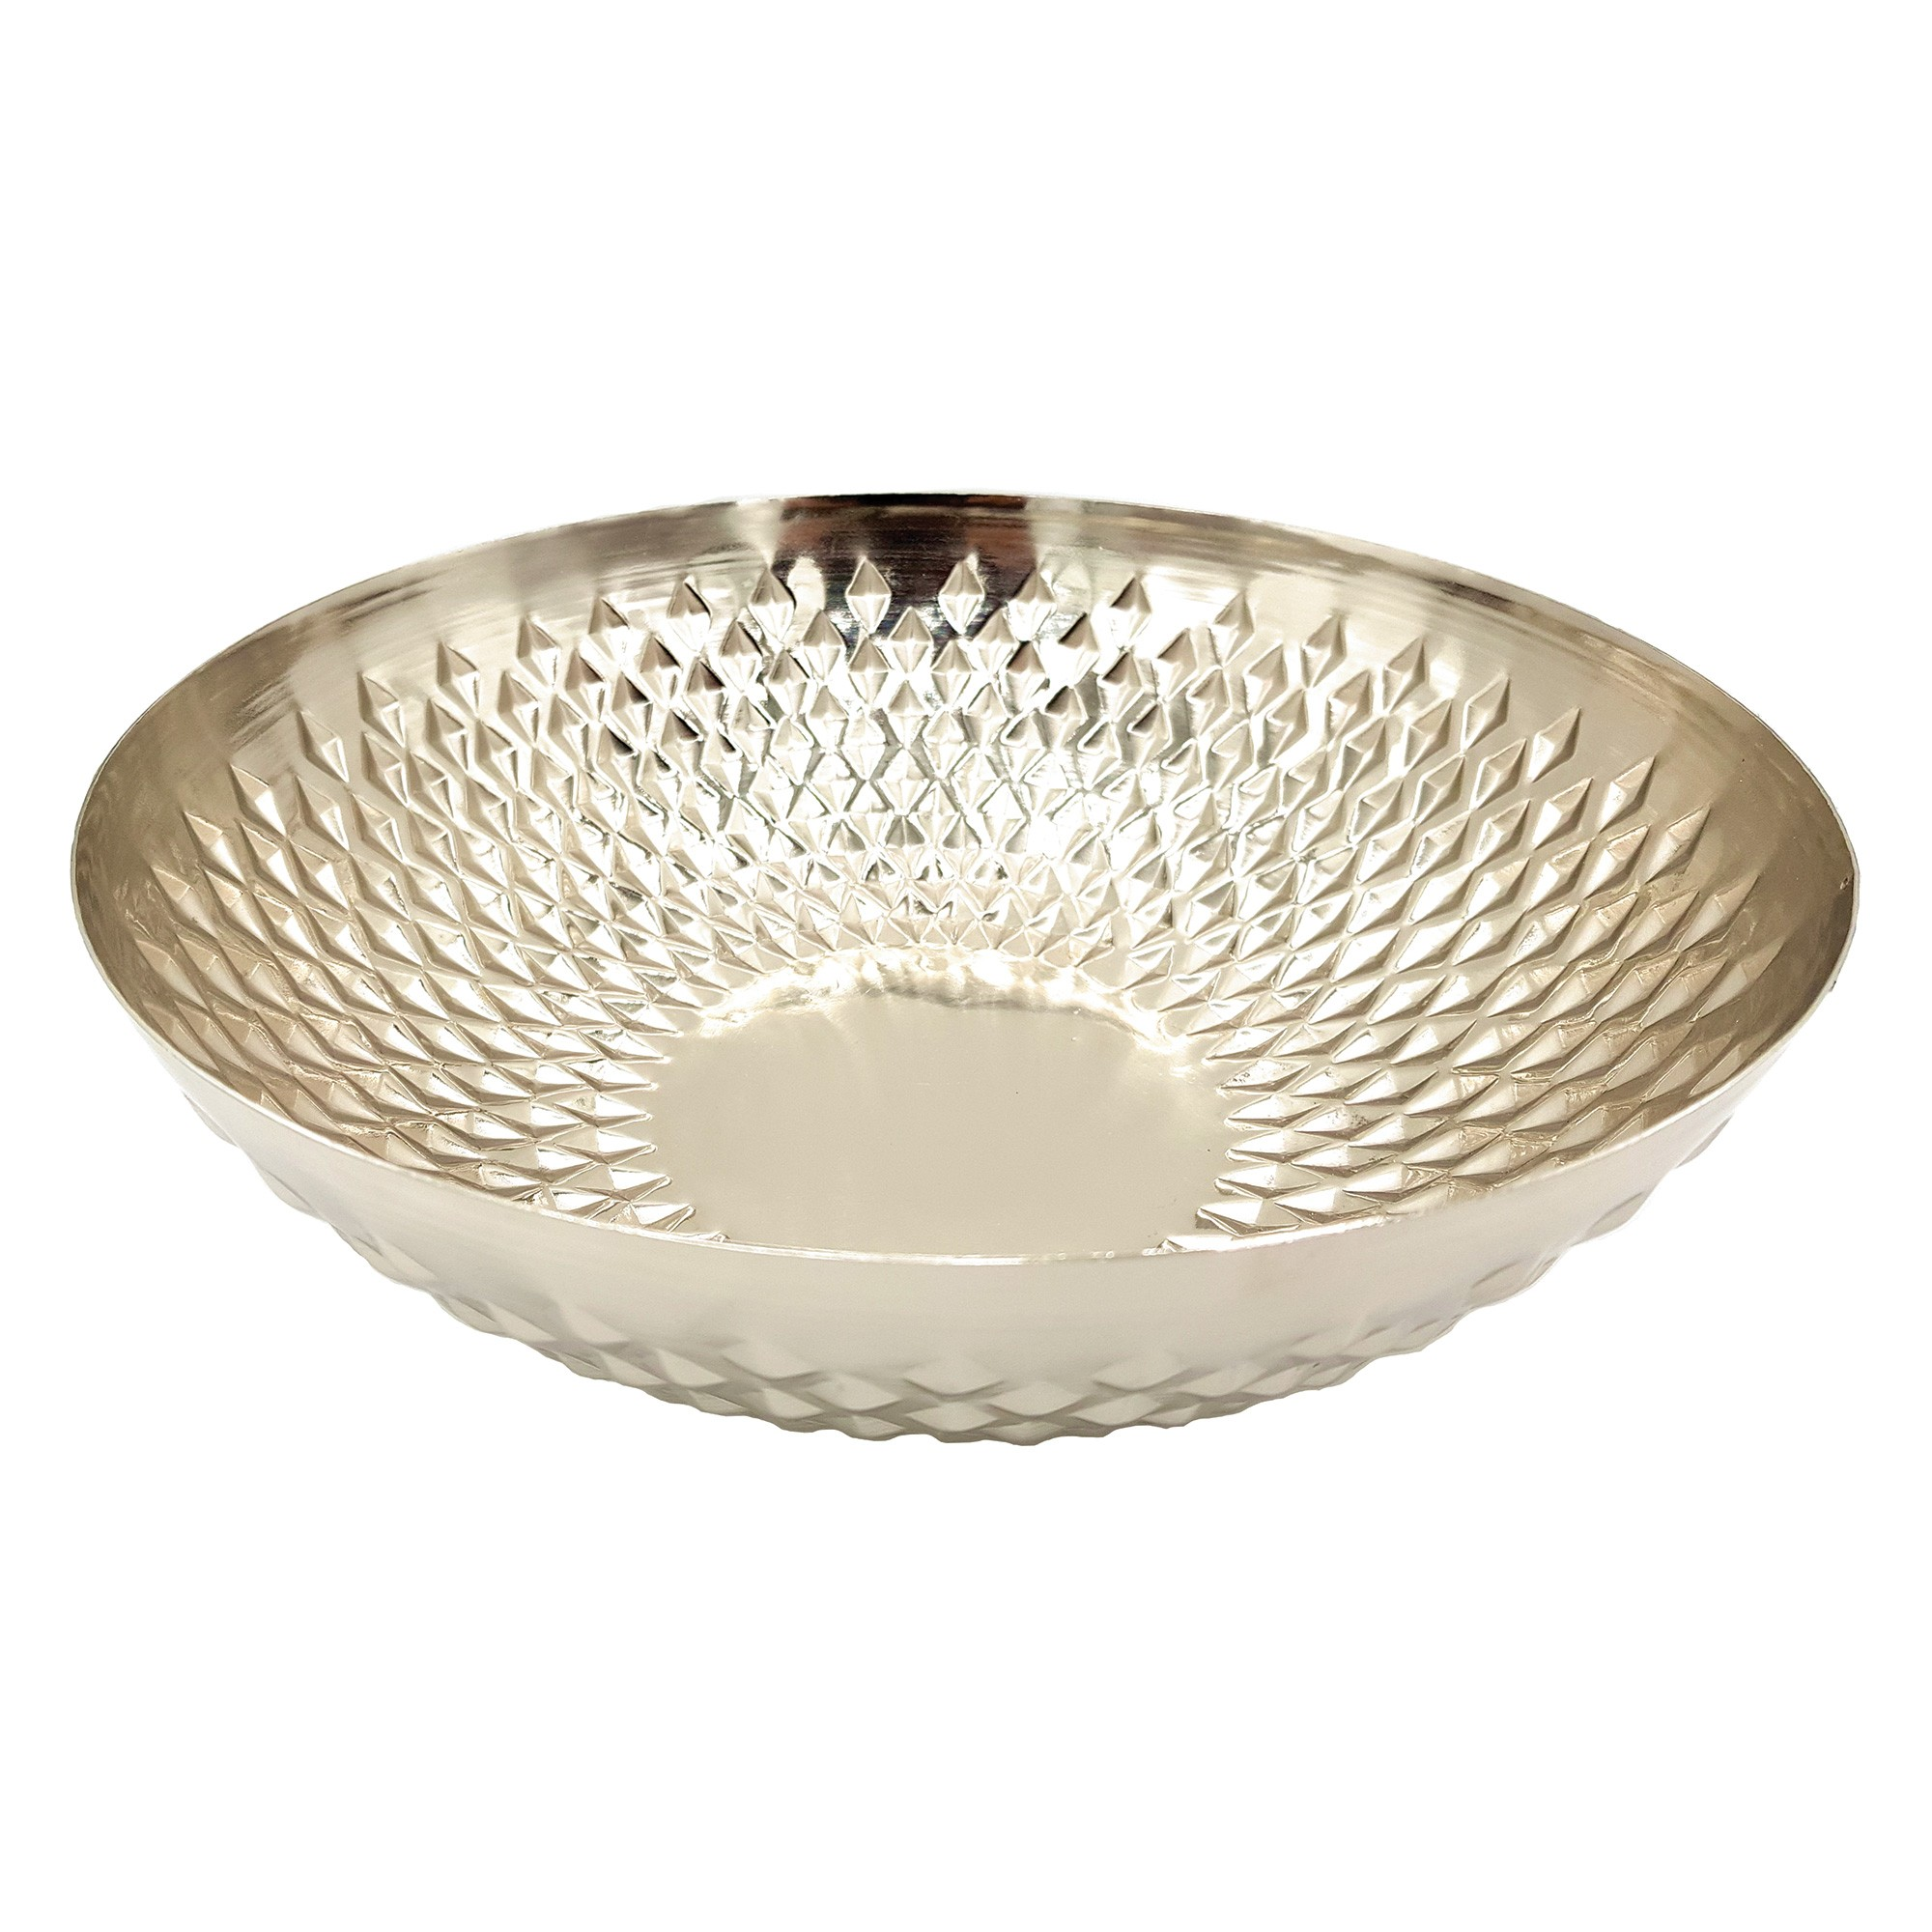 Siki Metal Bowl, Large, Silver